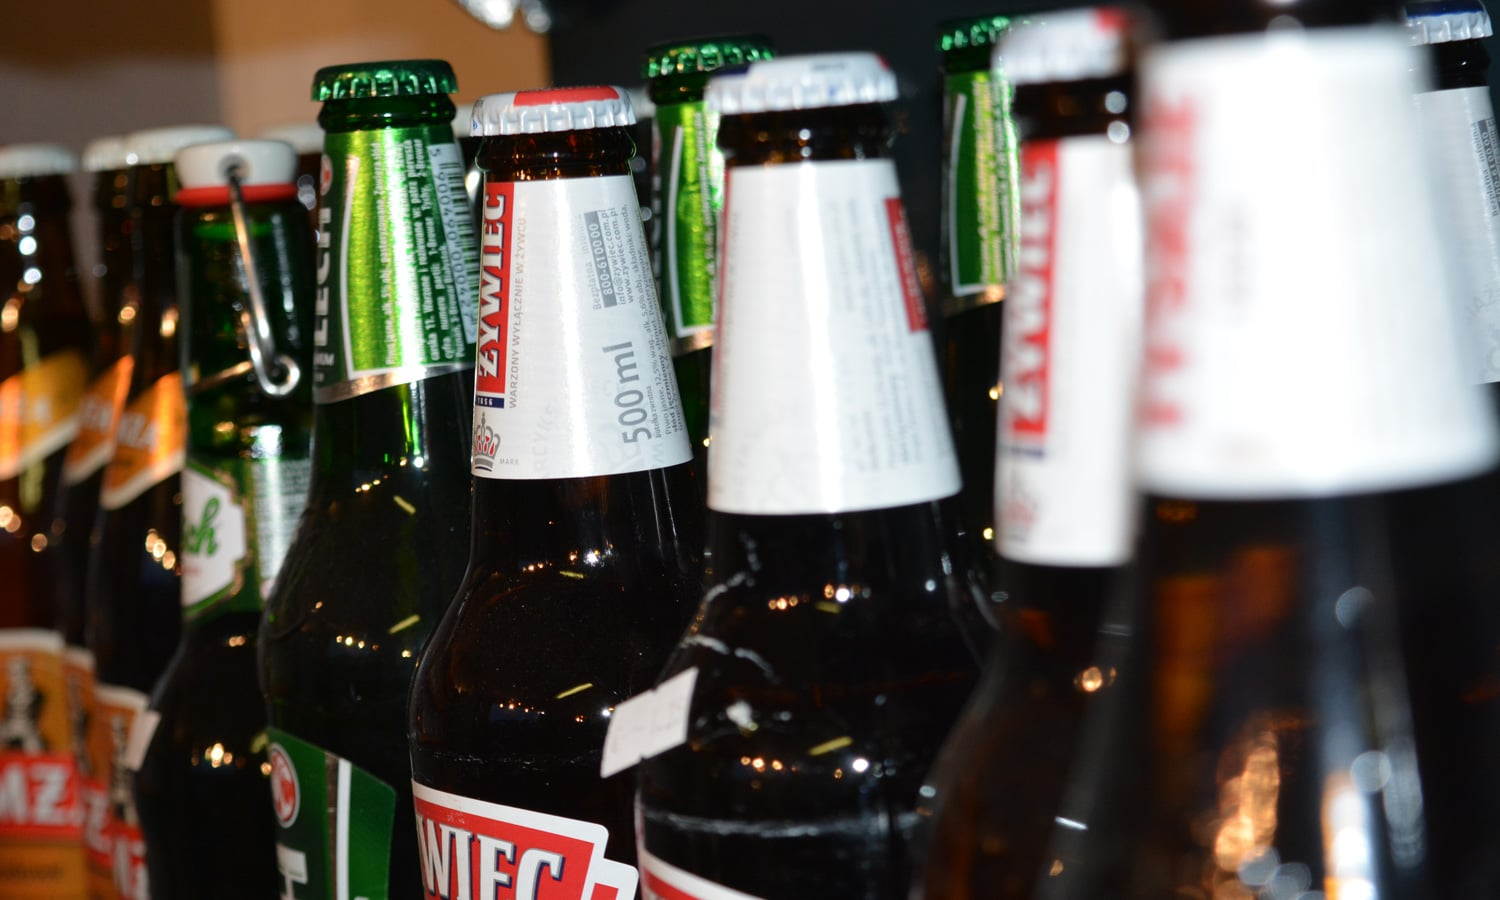 Legal Marijuana Sales Are Taking A Bite Out Of Beer Sales